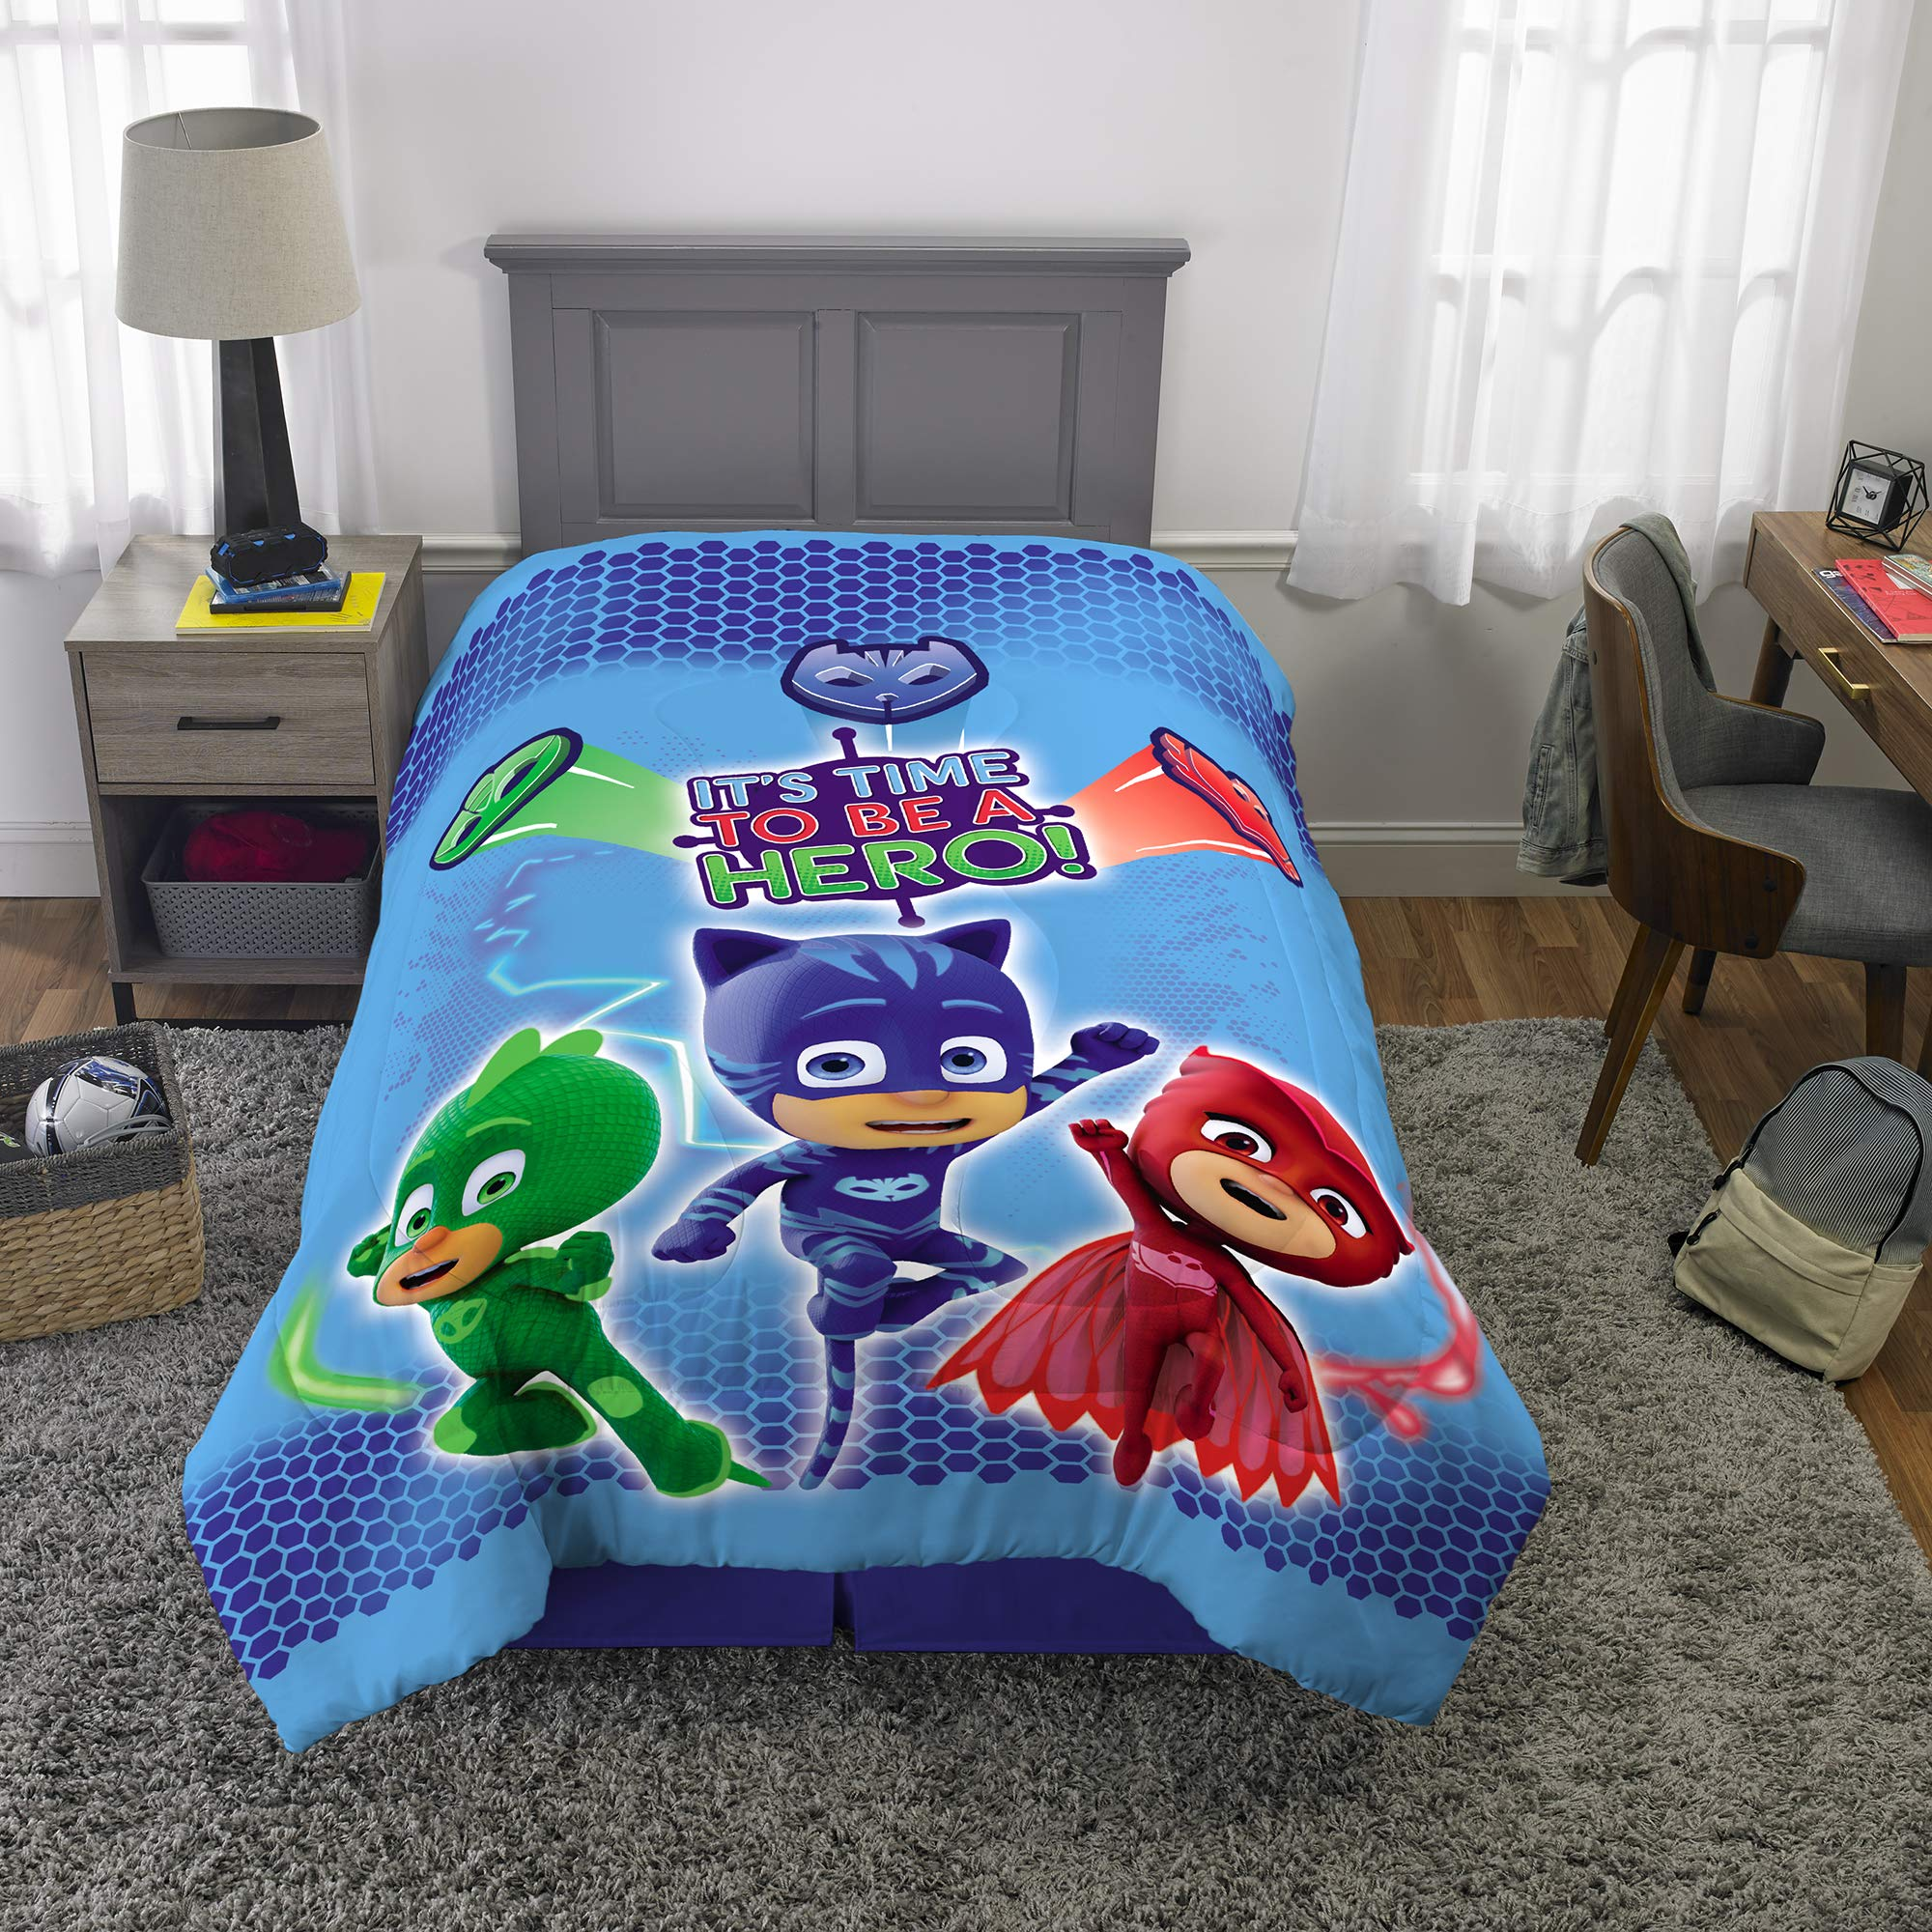 Franco Kids Bedding Super Soft Reversible Comforter, Twin/Full Size 72'' x 86'', PJ Masks by Franco